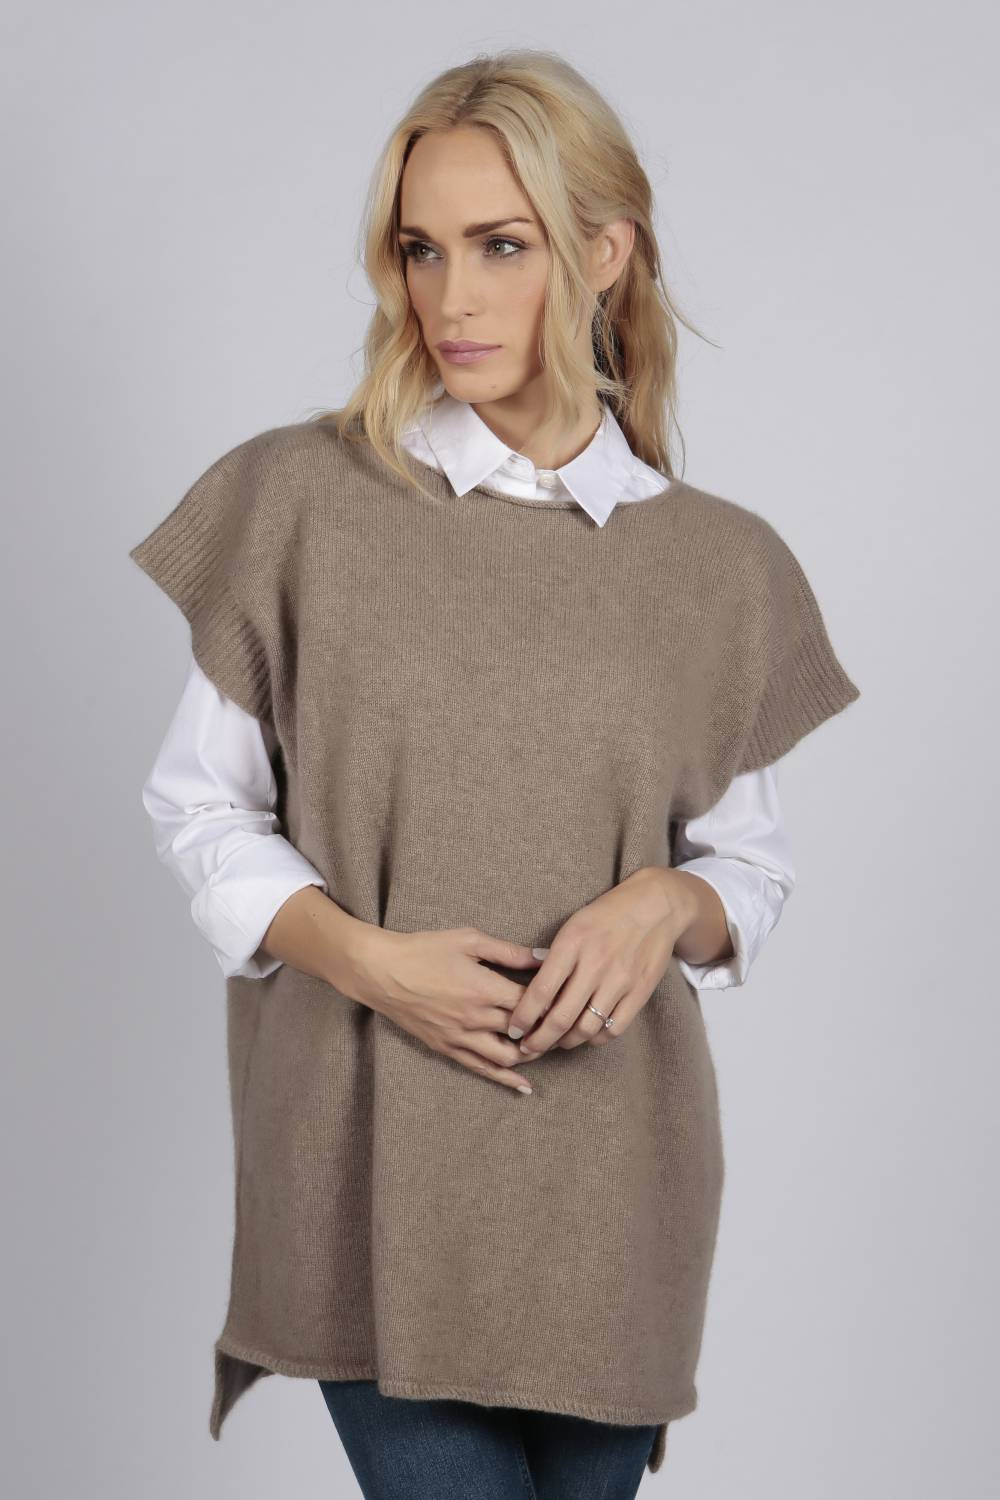 Sleeveless sweater | Italy in Cashmere